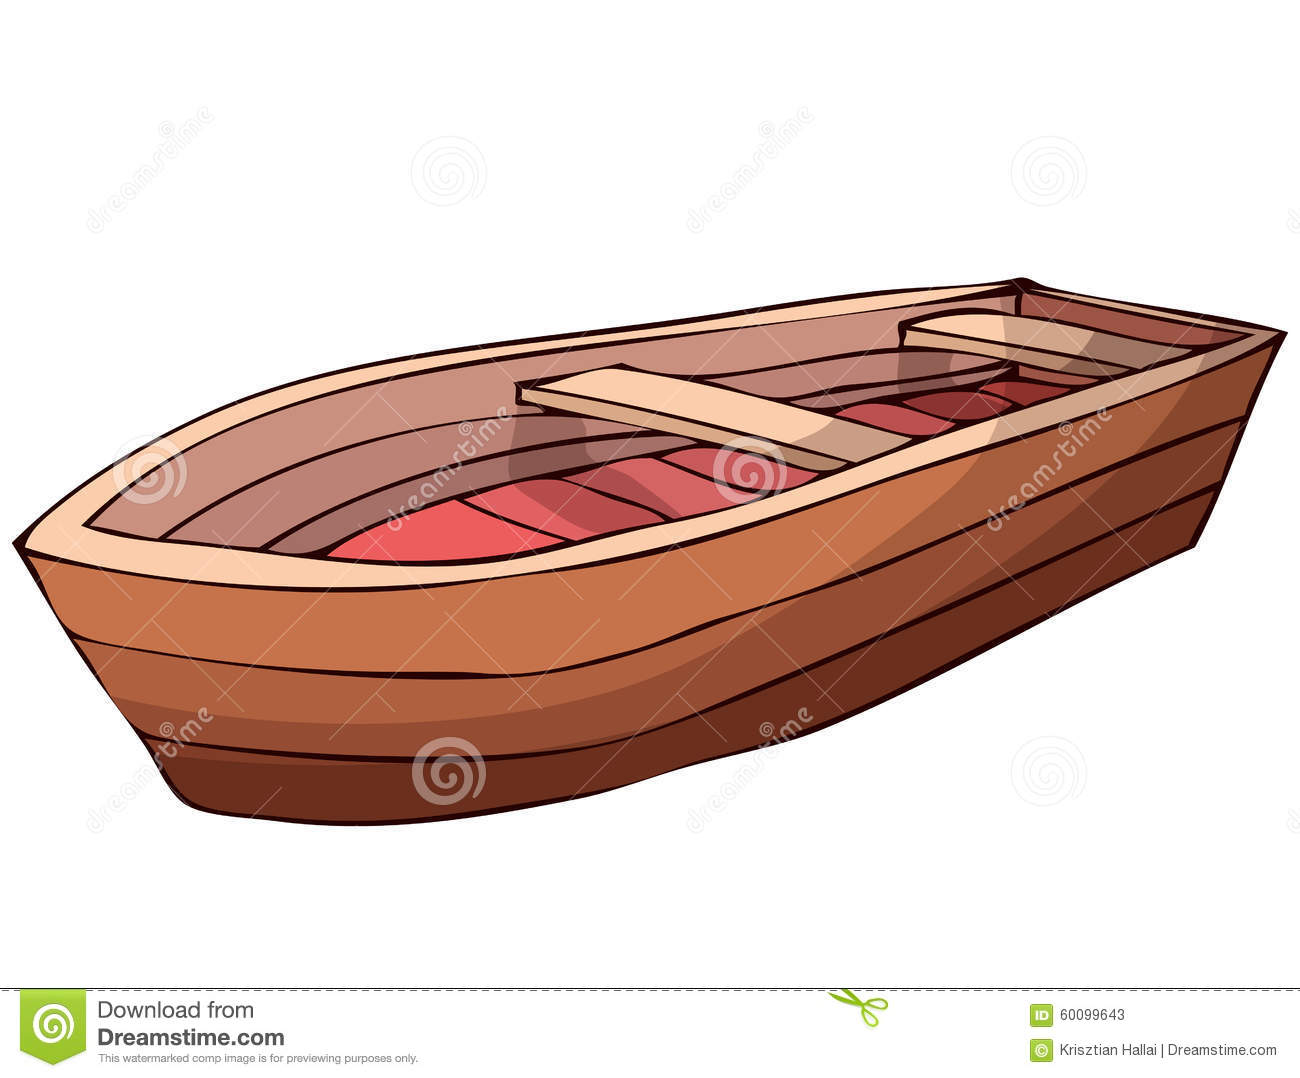 Wooden Boat. stock vector. Image of beach, campfire, ripple - 60099643